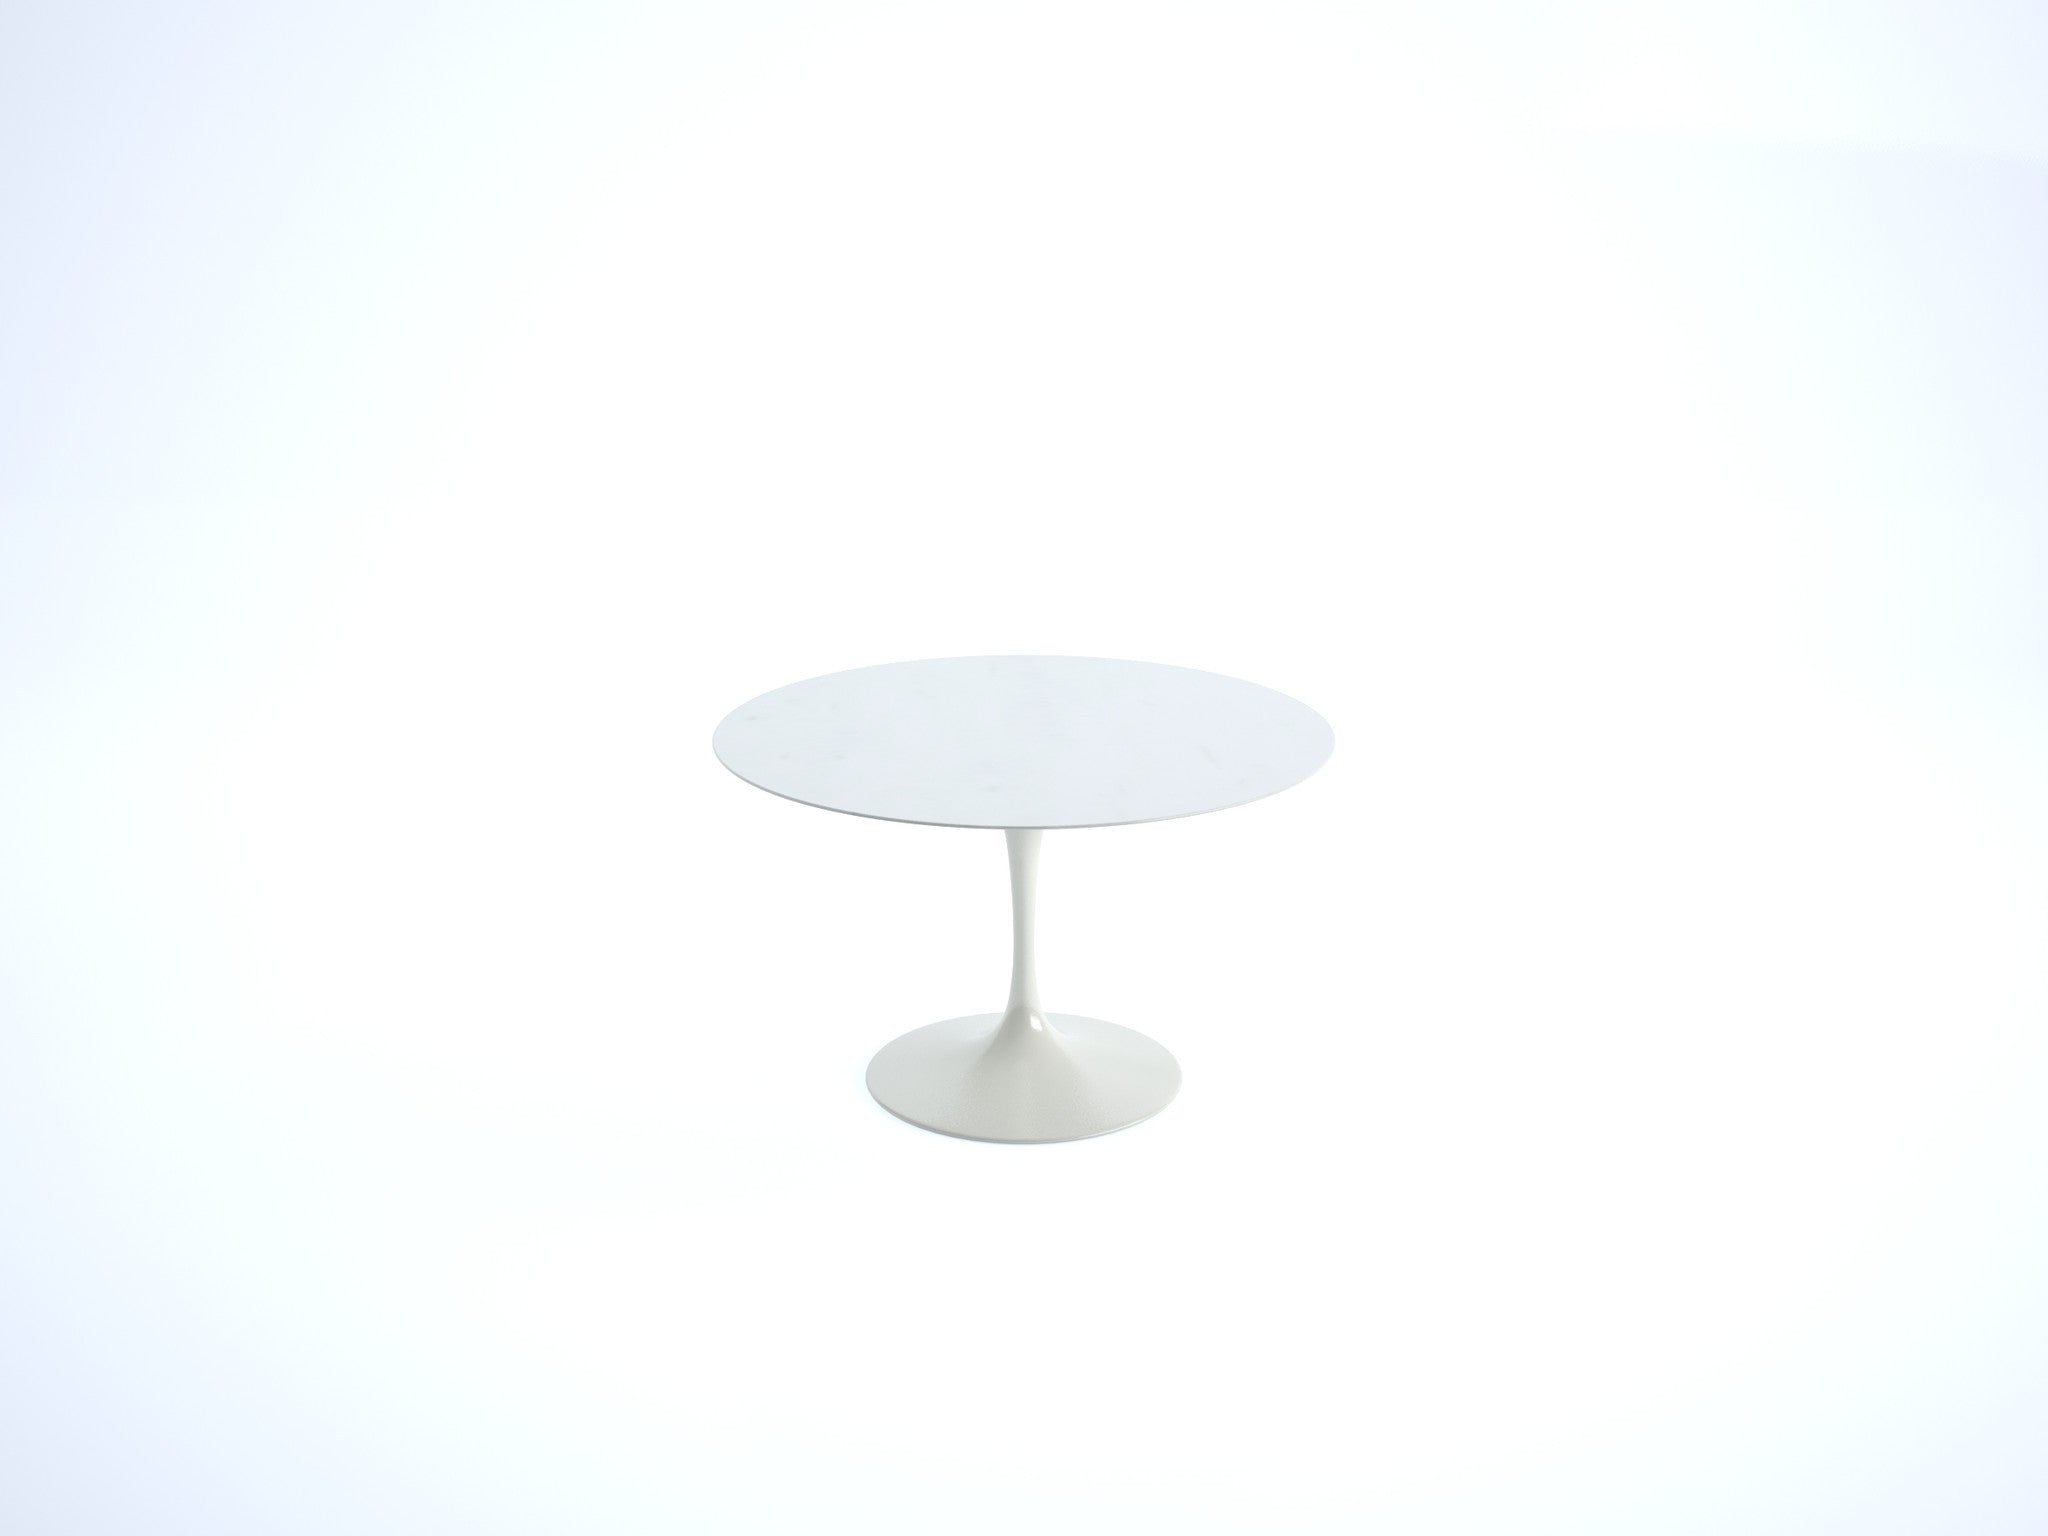 Saarinen Tulip Dining Table Round Couch Potato Company